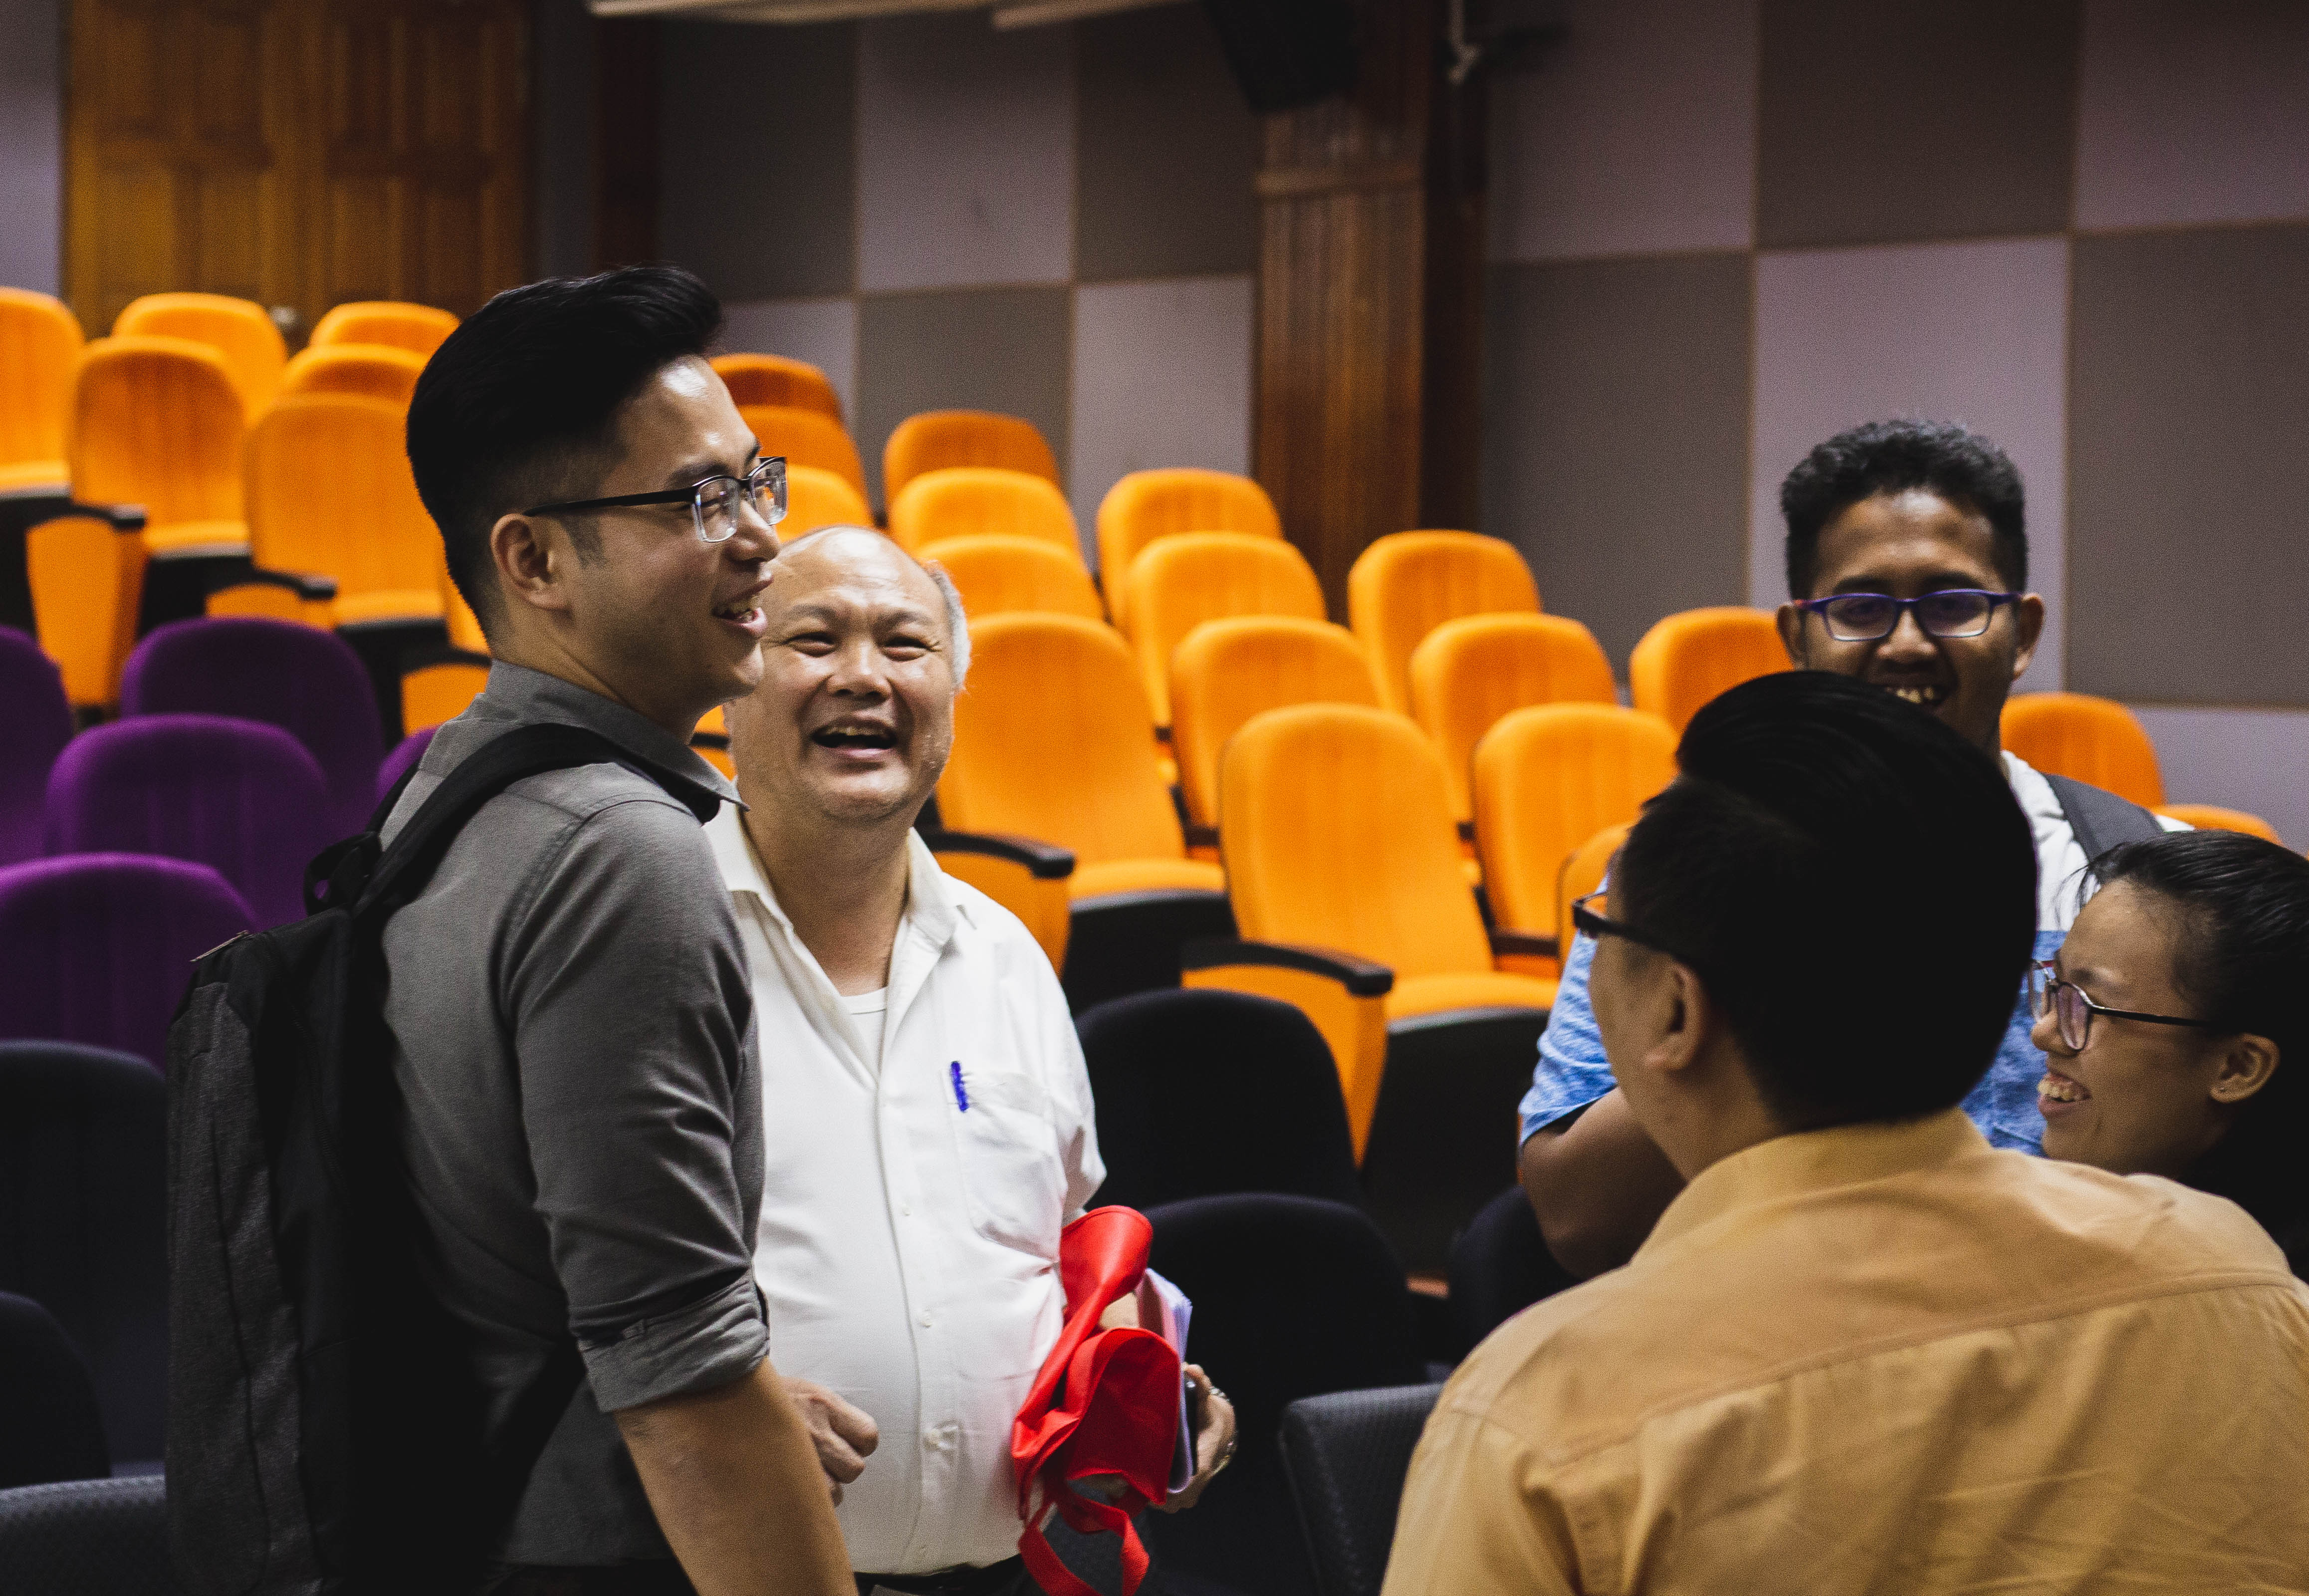 Some interaction session between speakers and audience during the UPM-HTC industrial talk.